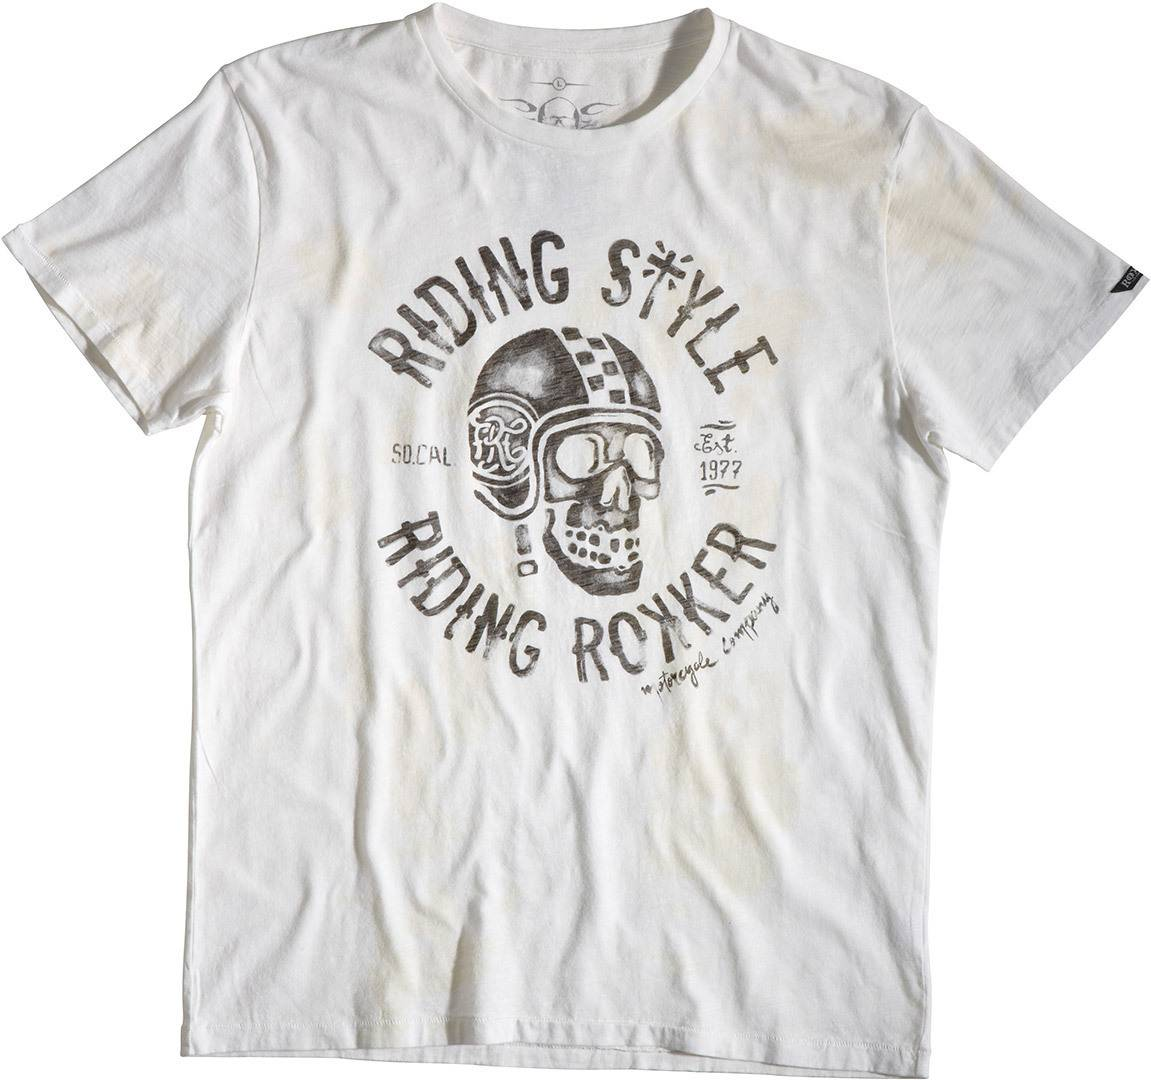 Rokker Riding T-Shirt Blanc taille : XL